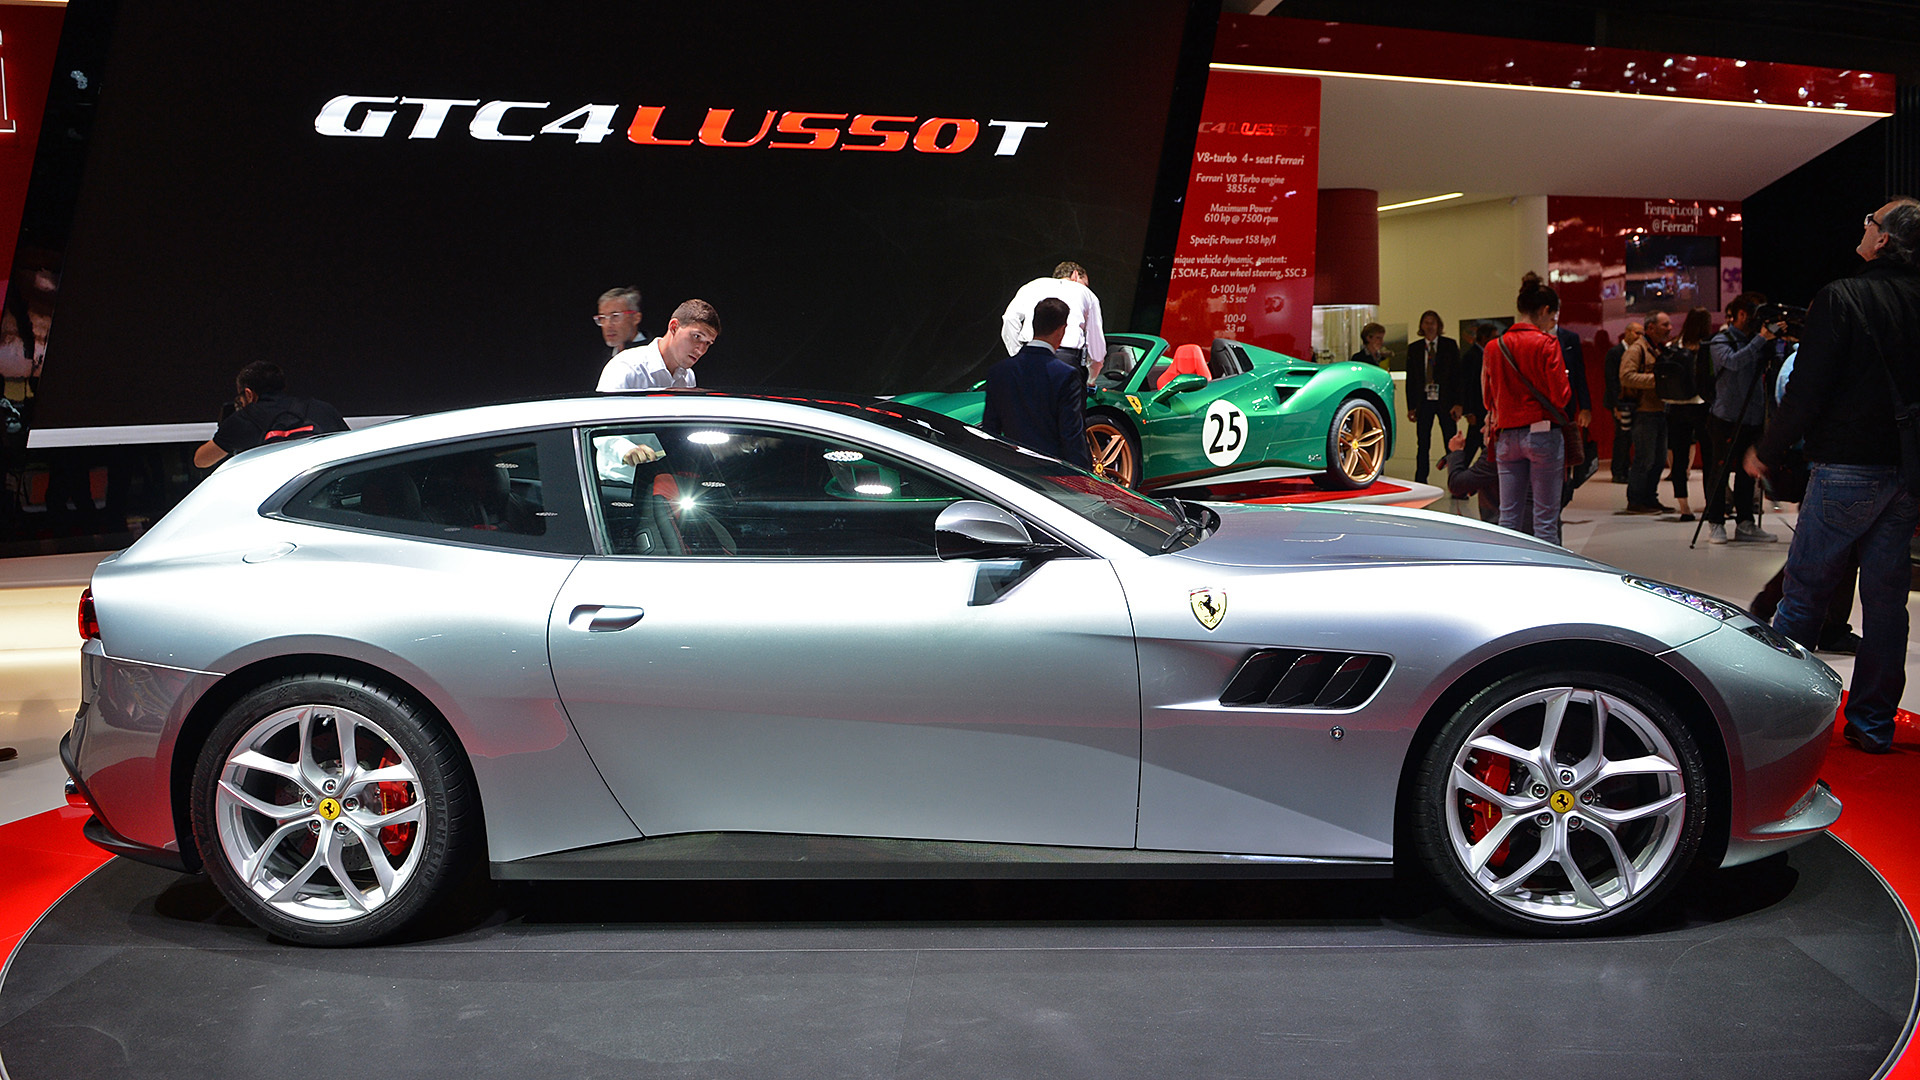 5 ways the turbo v8 ferrari gtc4 lusso t is better than the v12 autoblog. Black Bedroom Furniture Sets. Home Design Ideas